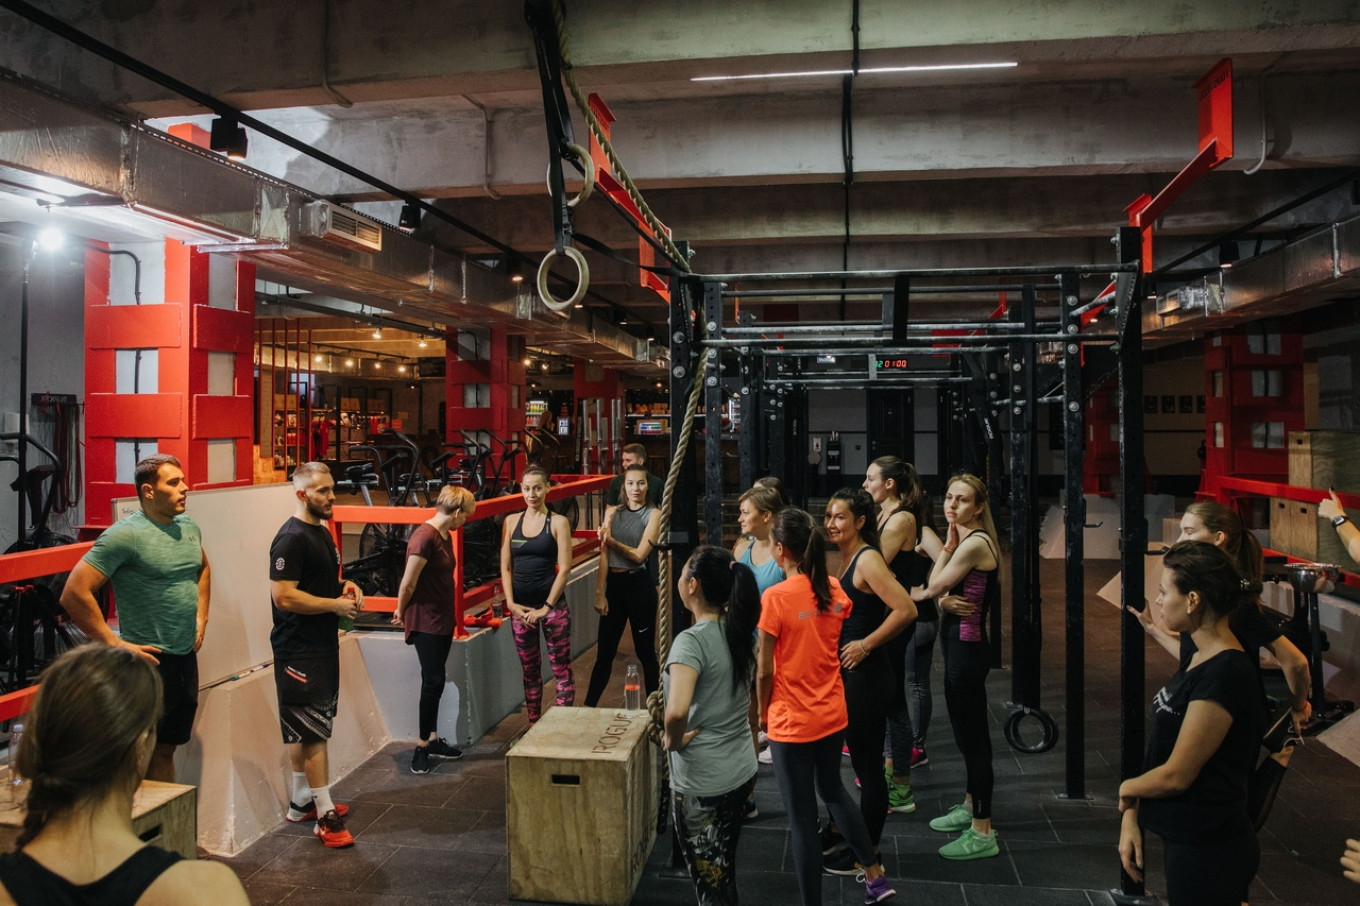 """Moscow's gyms and fitness clubs have already been forced to close. Alexandra Gerasimova, co-founder of Fitmost, which offers subscriptions to fitness classes said: """"We don't get any support … We need interest-free loans and subsidies that would help cover rent, critical expenses and support employees on reduced hours. We will not be able to cope in this situation without state support."""" Credit:  Fitmost"""